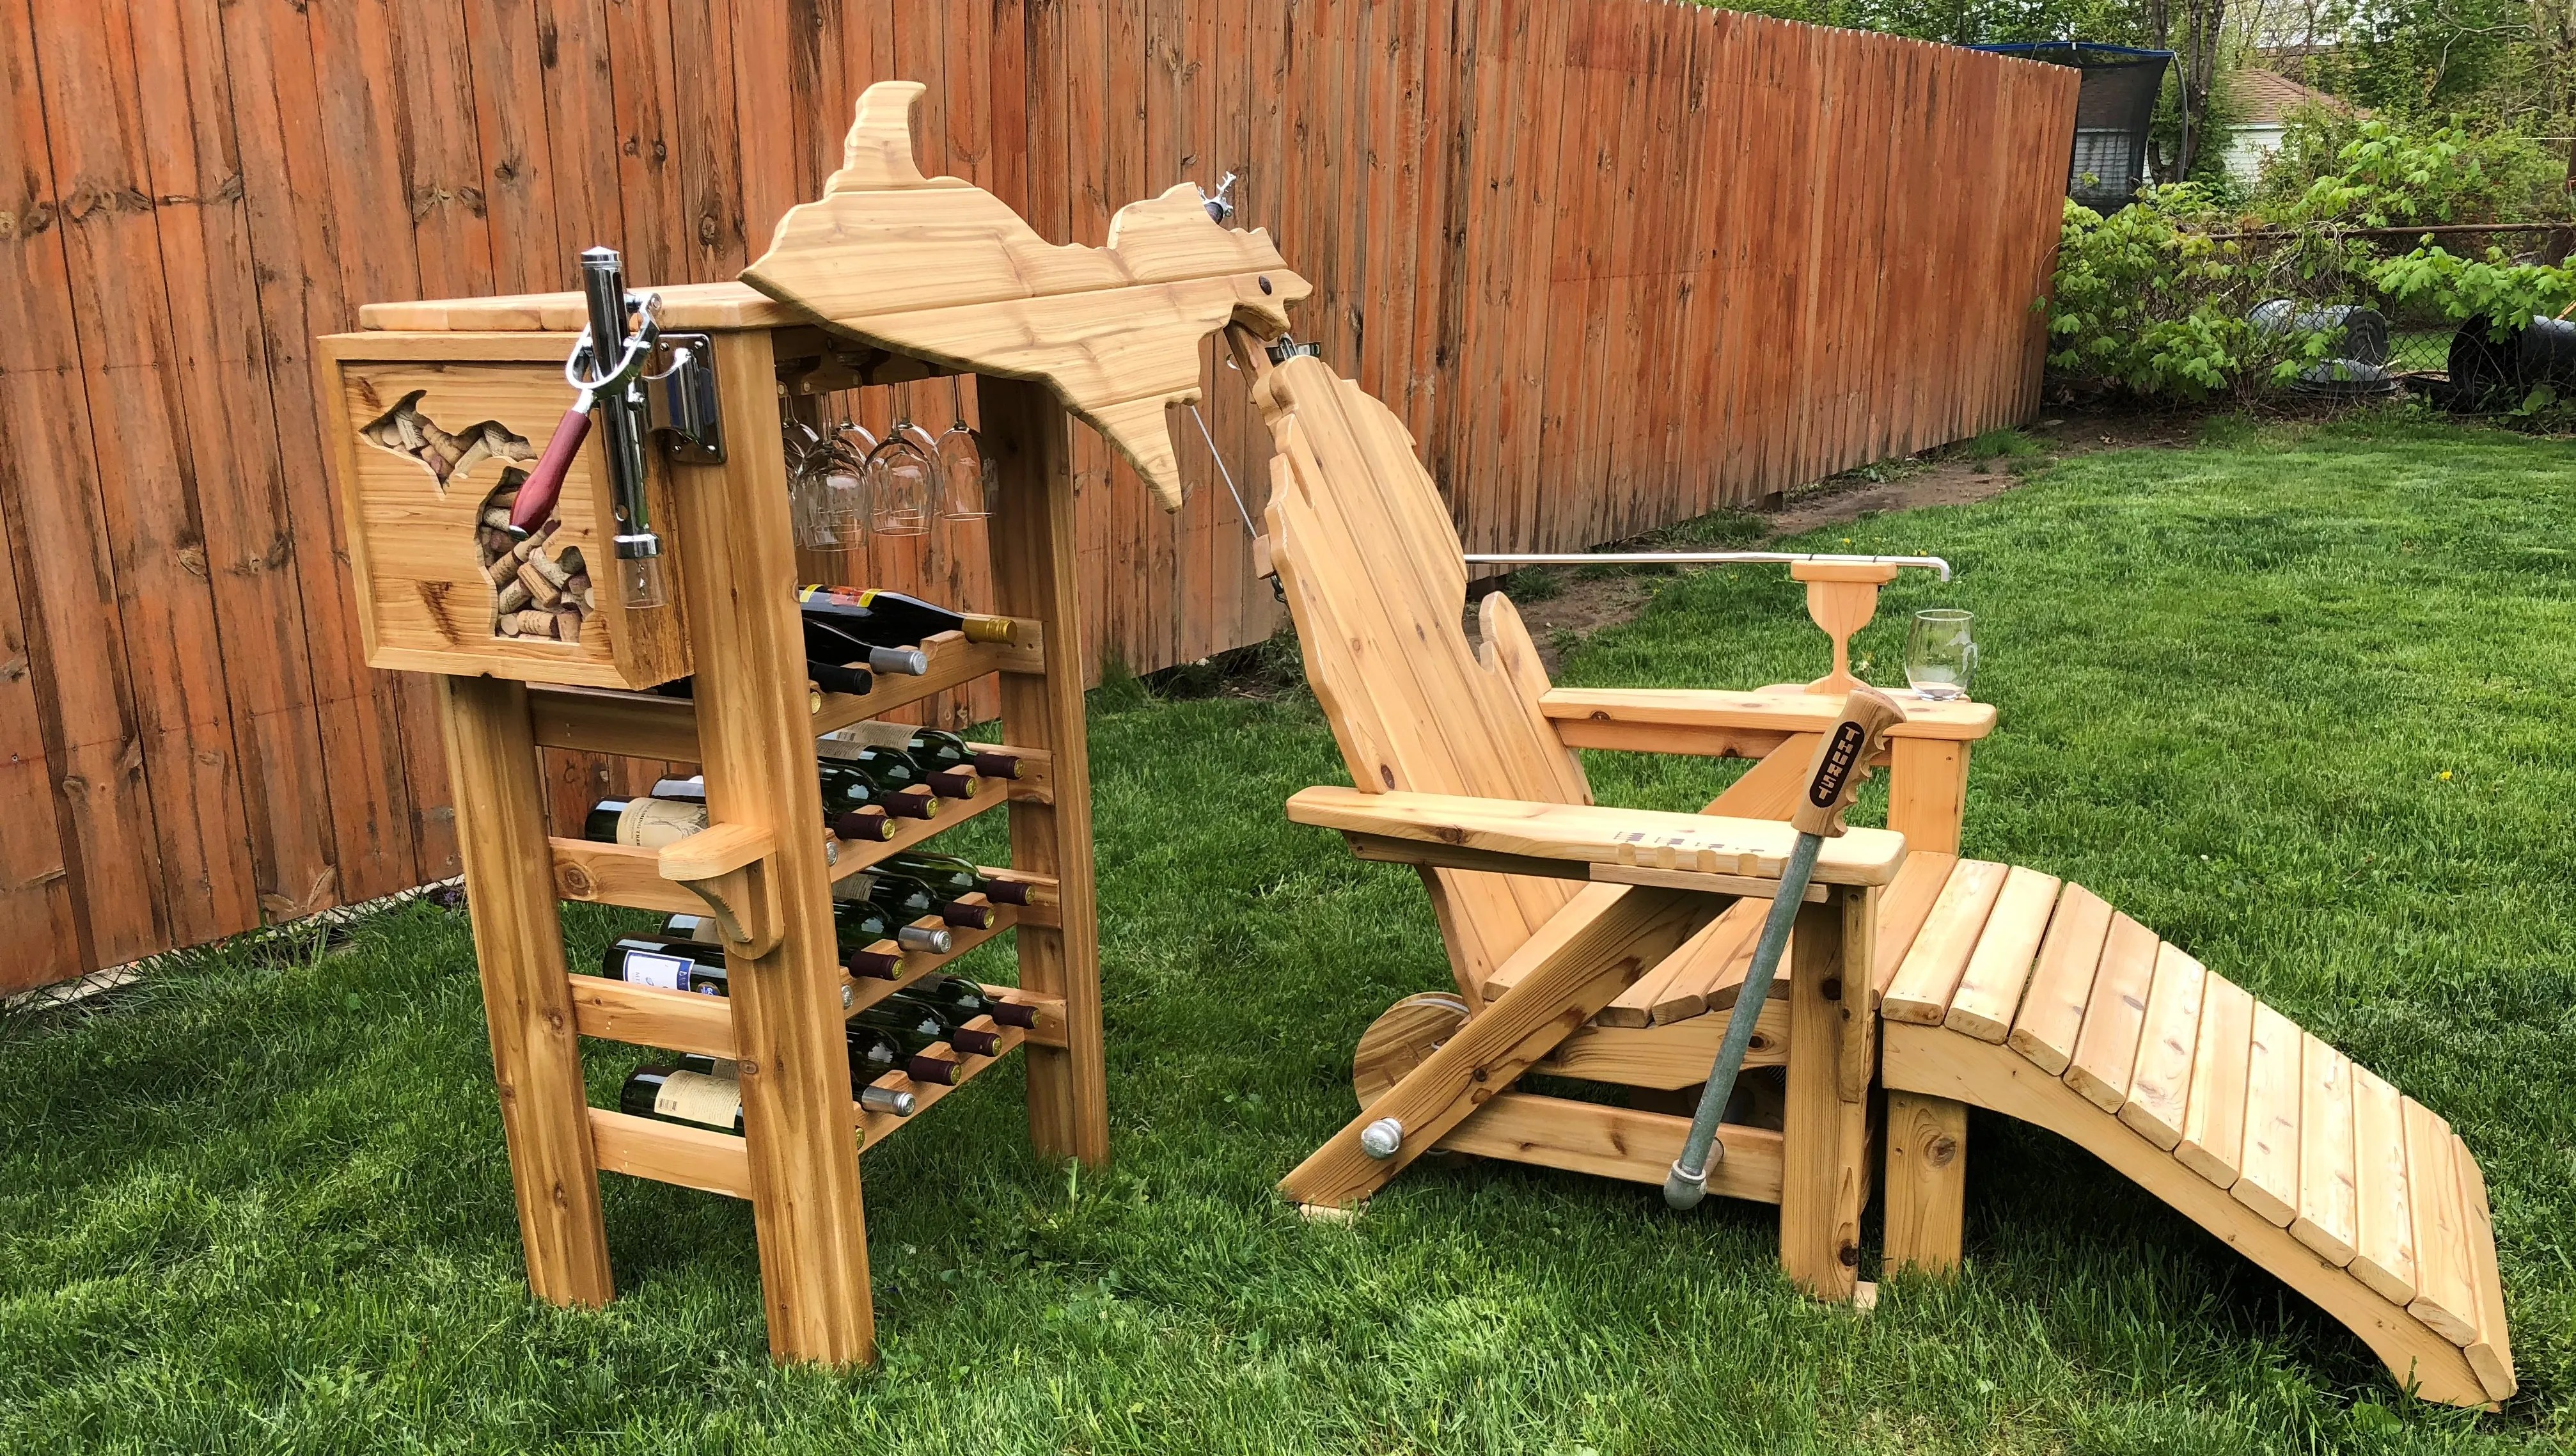 cheap lawn chair ergo desk this michigan will pour you wine with the pull of a lever